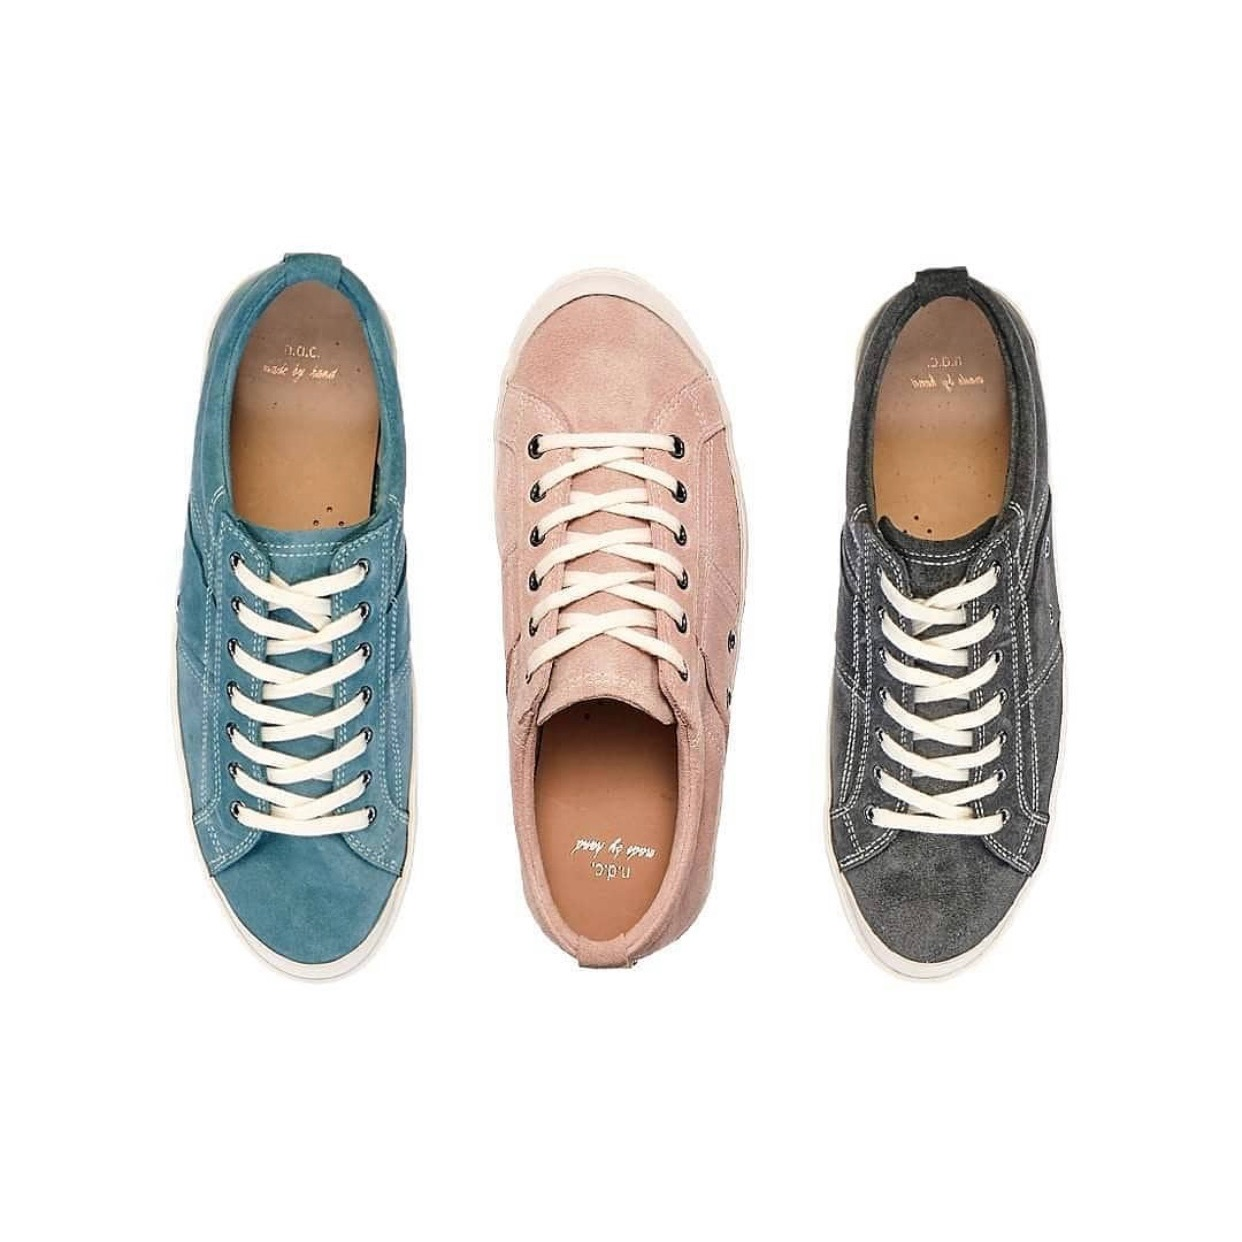 New for Shoes…. N.D.C Made by Hand